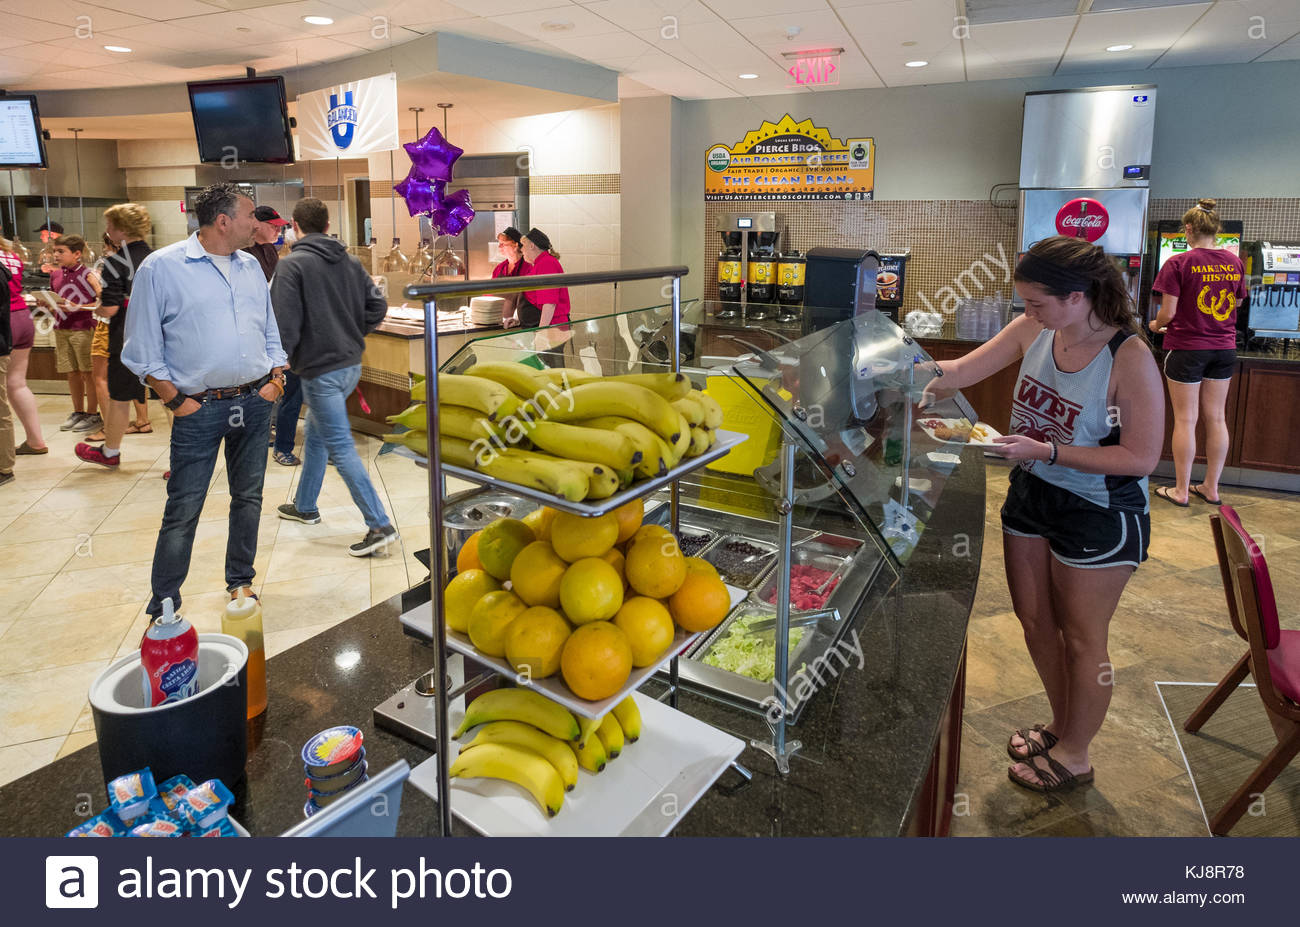 Adults and students in food court inside the Rubin Campus Center, Worcester Polytechnic Institute, Worcester, Worcester - Stock Image